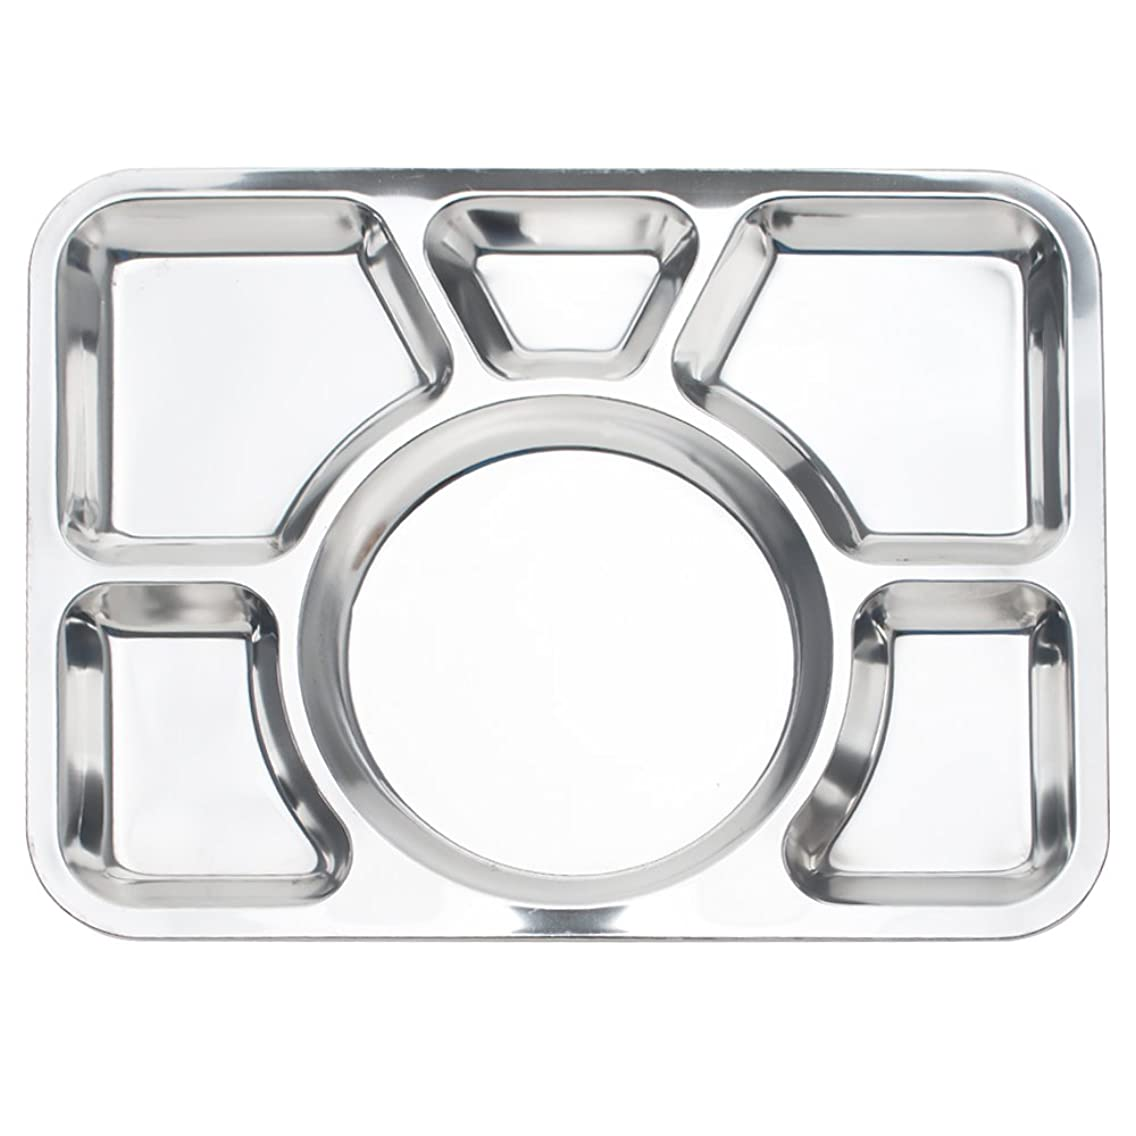 Aspire Divided Dinner Tray/Lunch Container, Metal Plate, 1 Pc-6 Sections